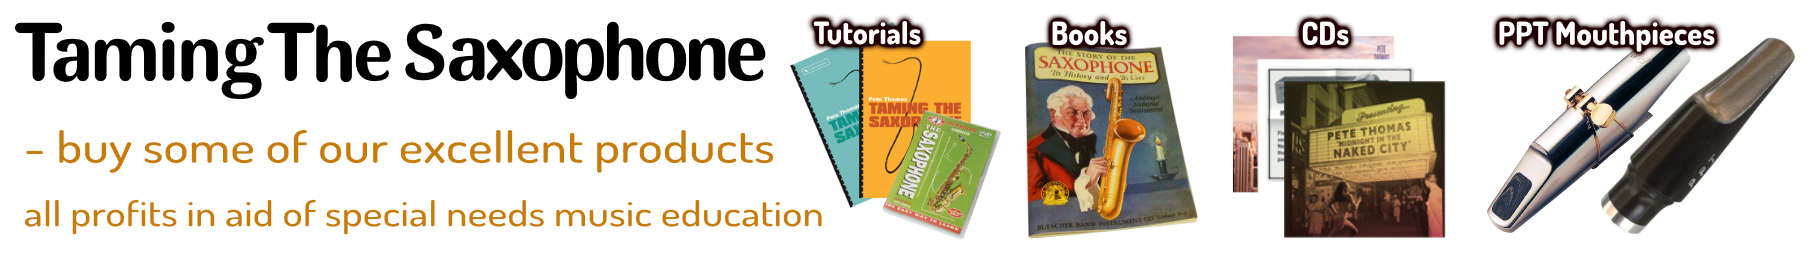 PPT Mouthpieces, tutorials, CDs & playalongs